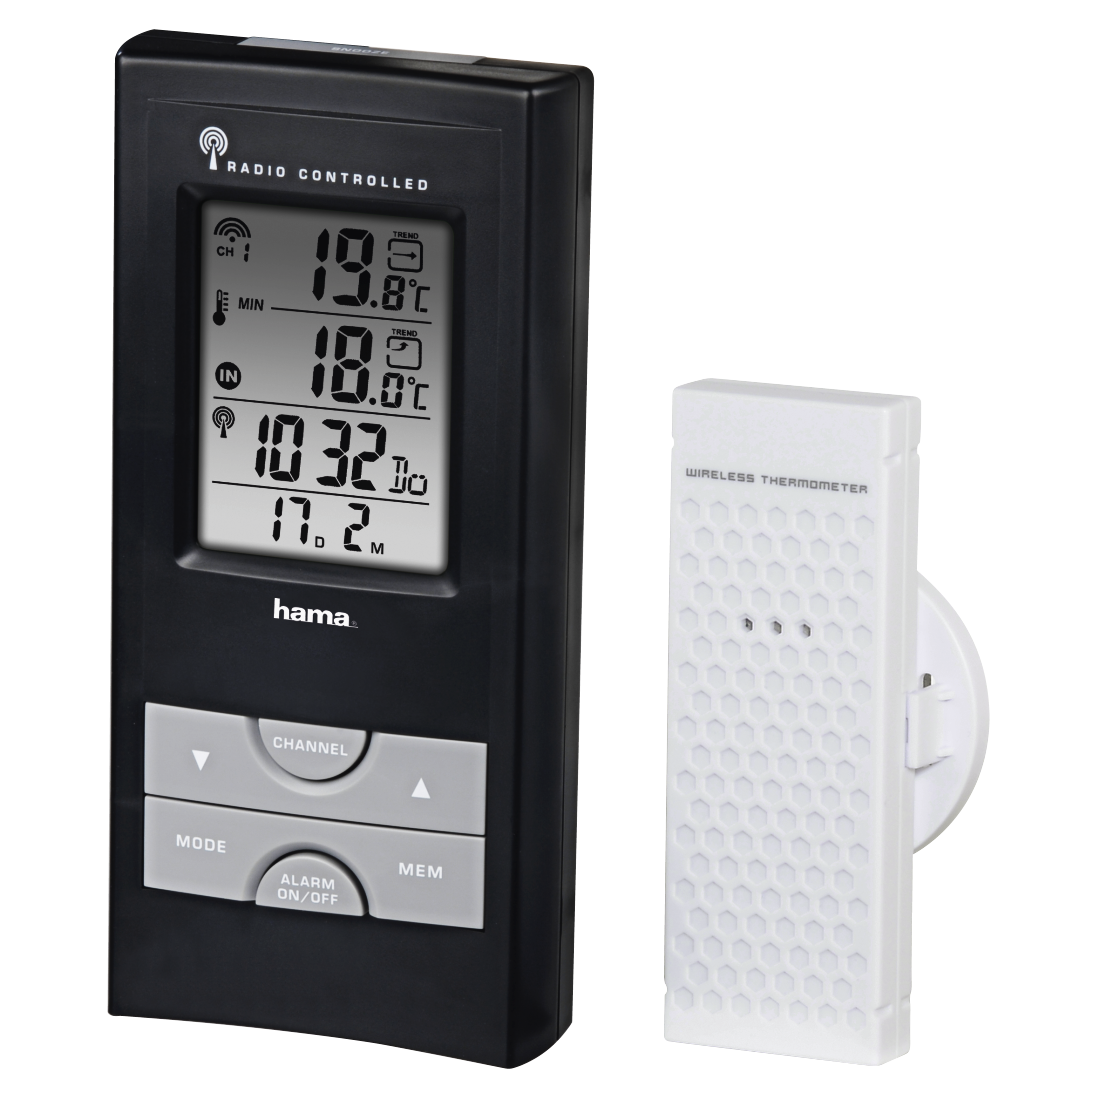 00092659 Hama Ews 165 Electronic Weather Station Black Frost Alarm 1 Article Was Added To